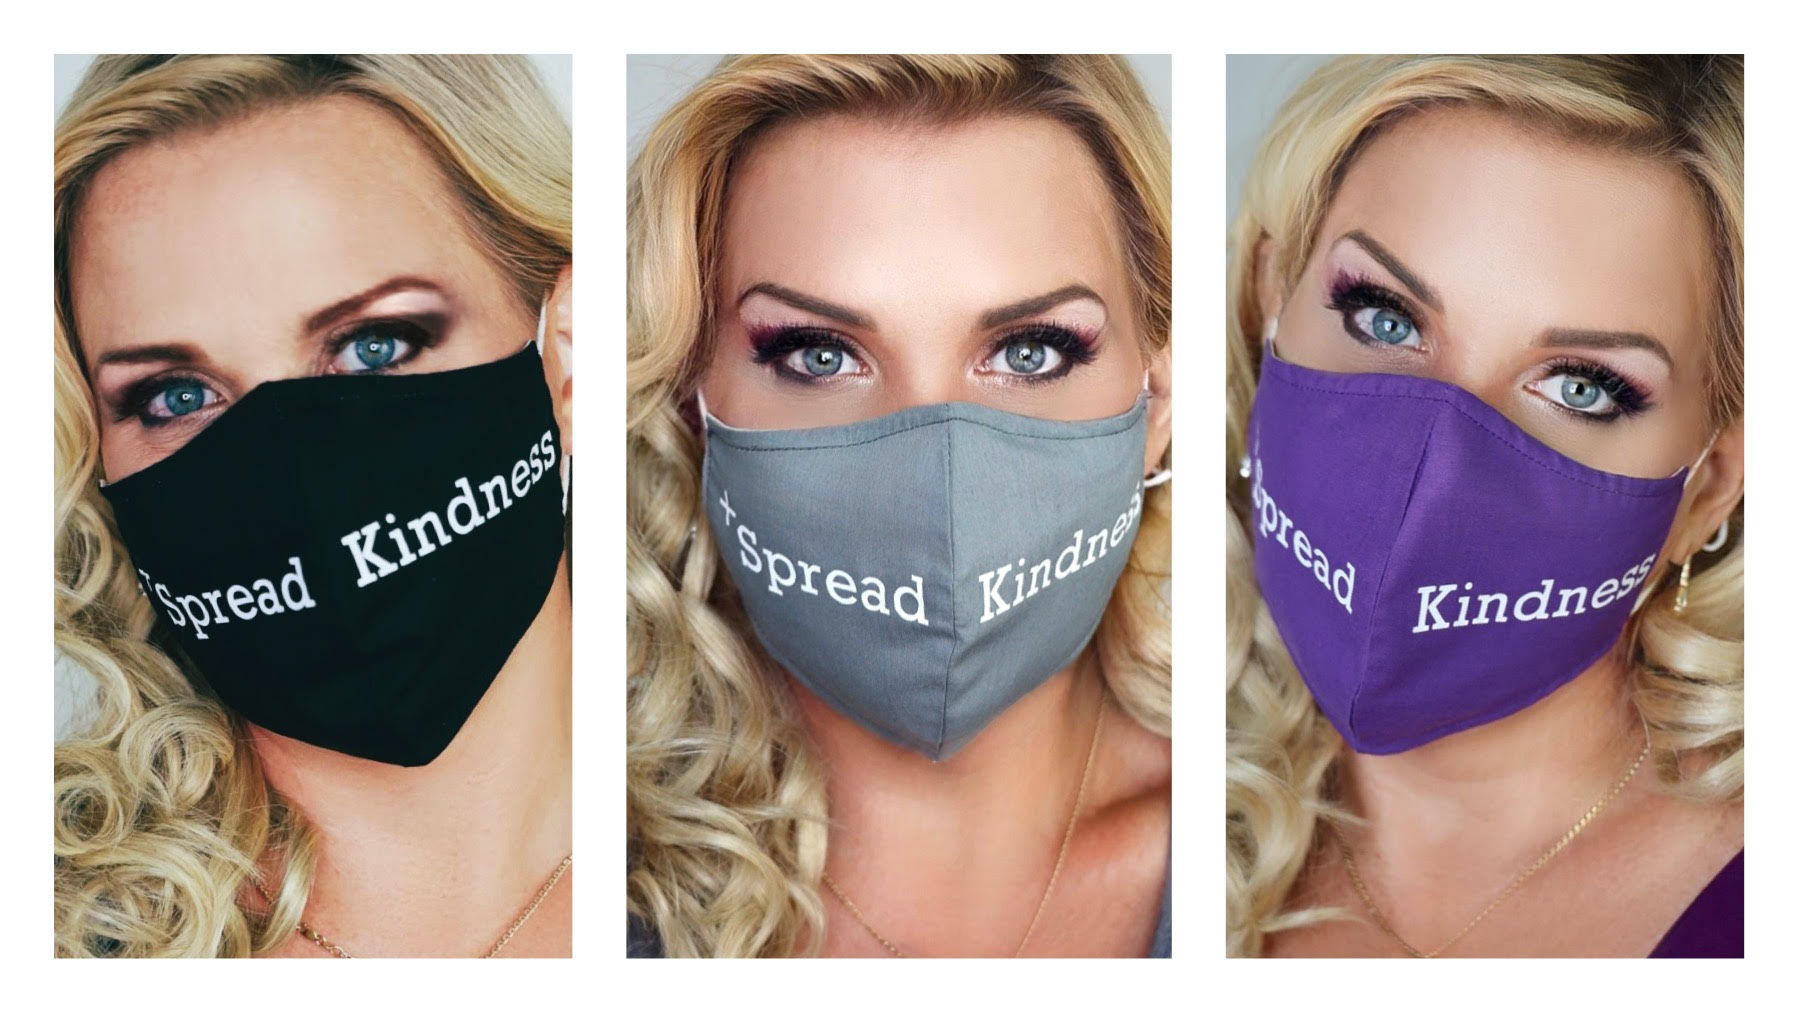 Spread Kindness Masks Fundraiser